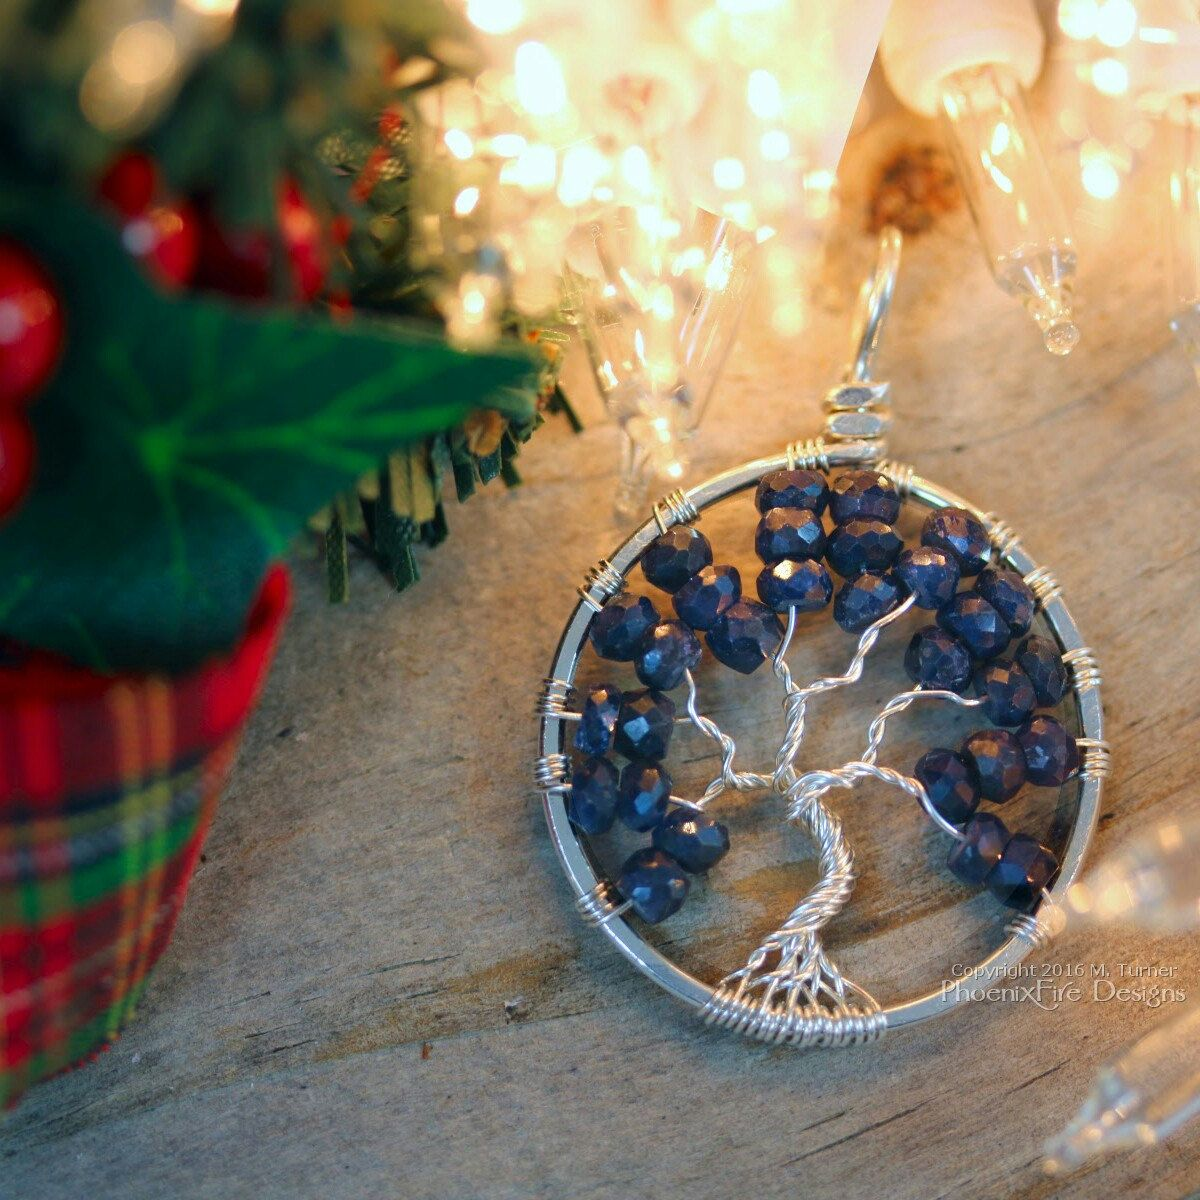 Recycled, eco-friendly Argentium sterling silver wire wrapped tree of life pendant with deep blue sapphire gemstones. Make her holiday shine with handmade jewelry from PhoenixFire Designs. Celebrating 10 years of luxury, quality, and beauty on etsy. 💜